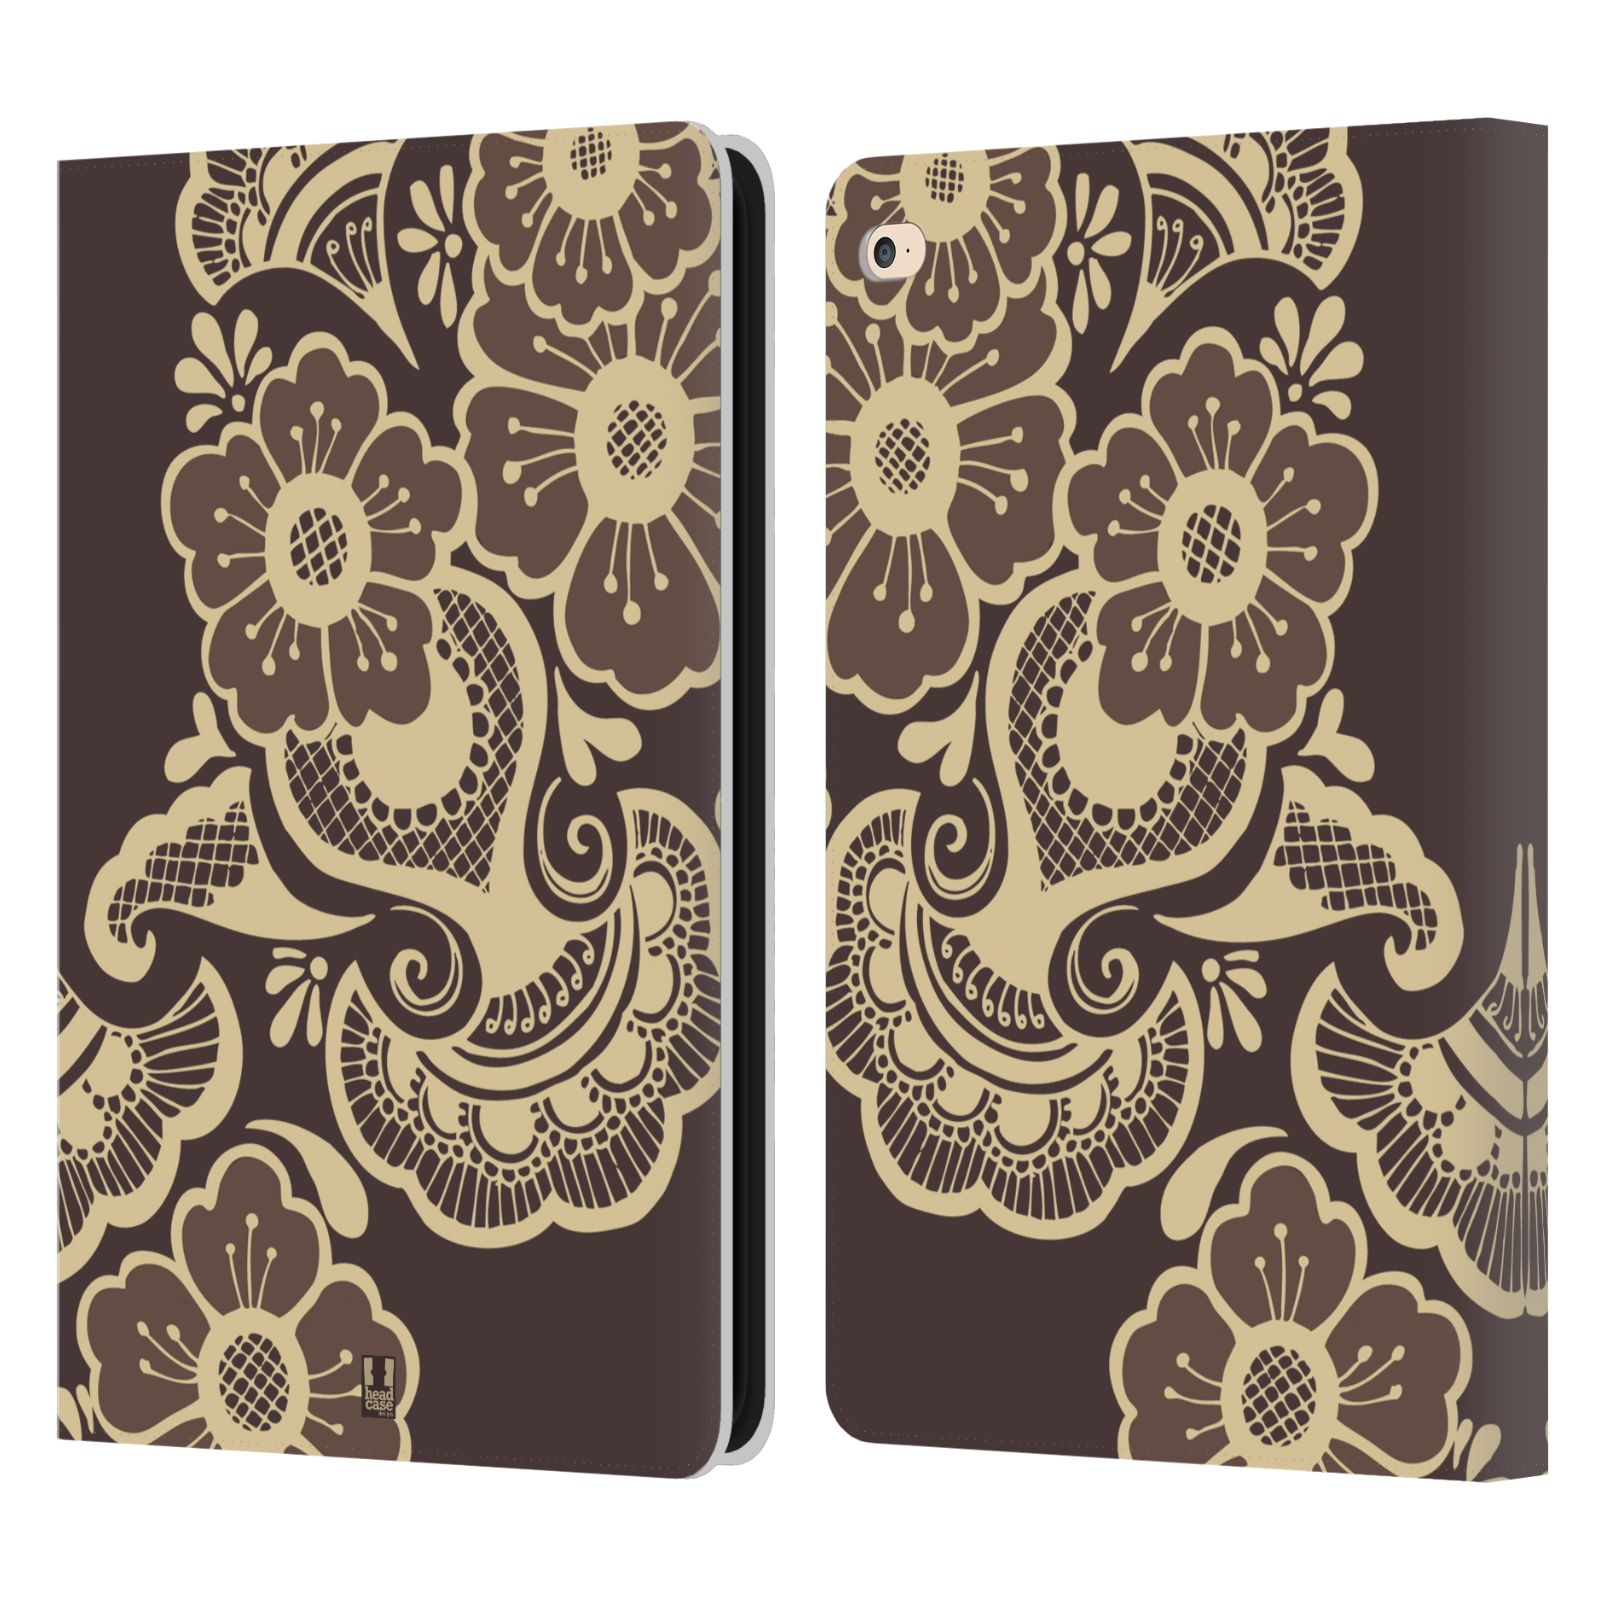 Leather Book Cover Design : Head case designs henna leather book wallet cover for